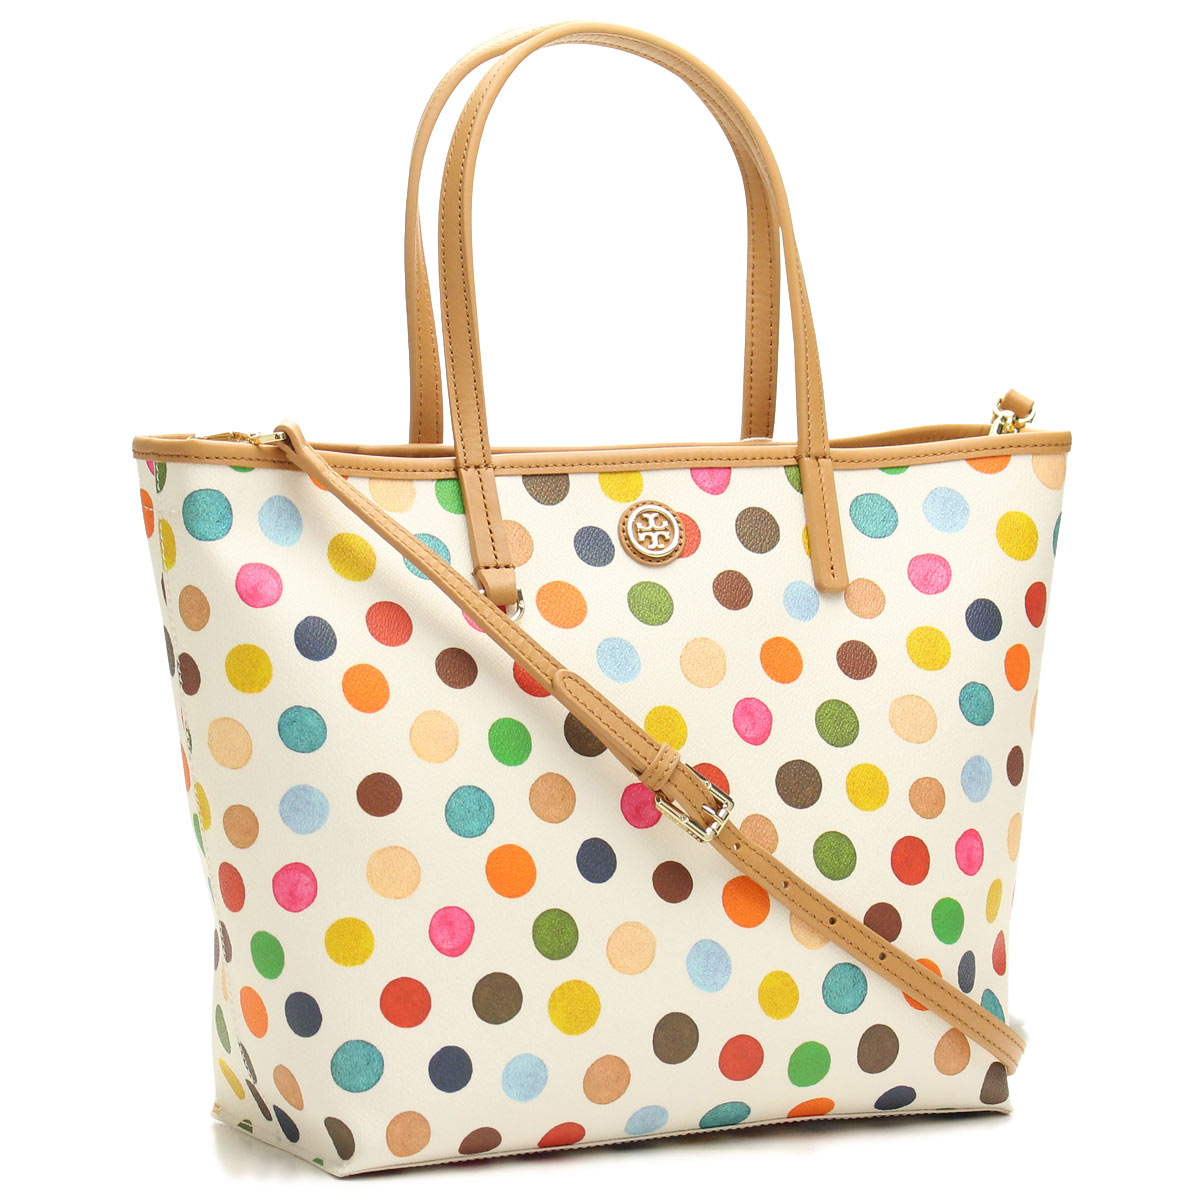 Hit The Total Brand Whole Tory Burch Kerrington Tote Bag 21159541 996 Multidot White Series Multi Color Taxfree Send By